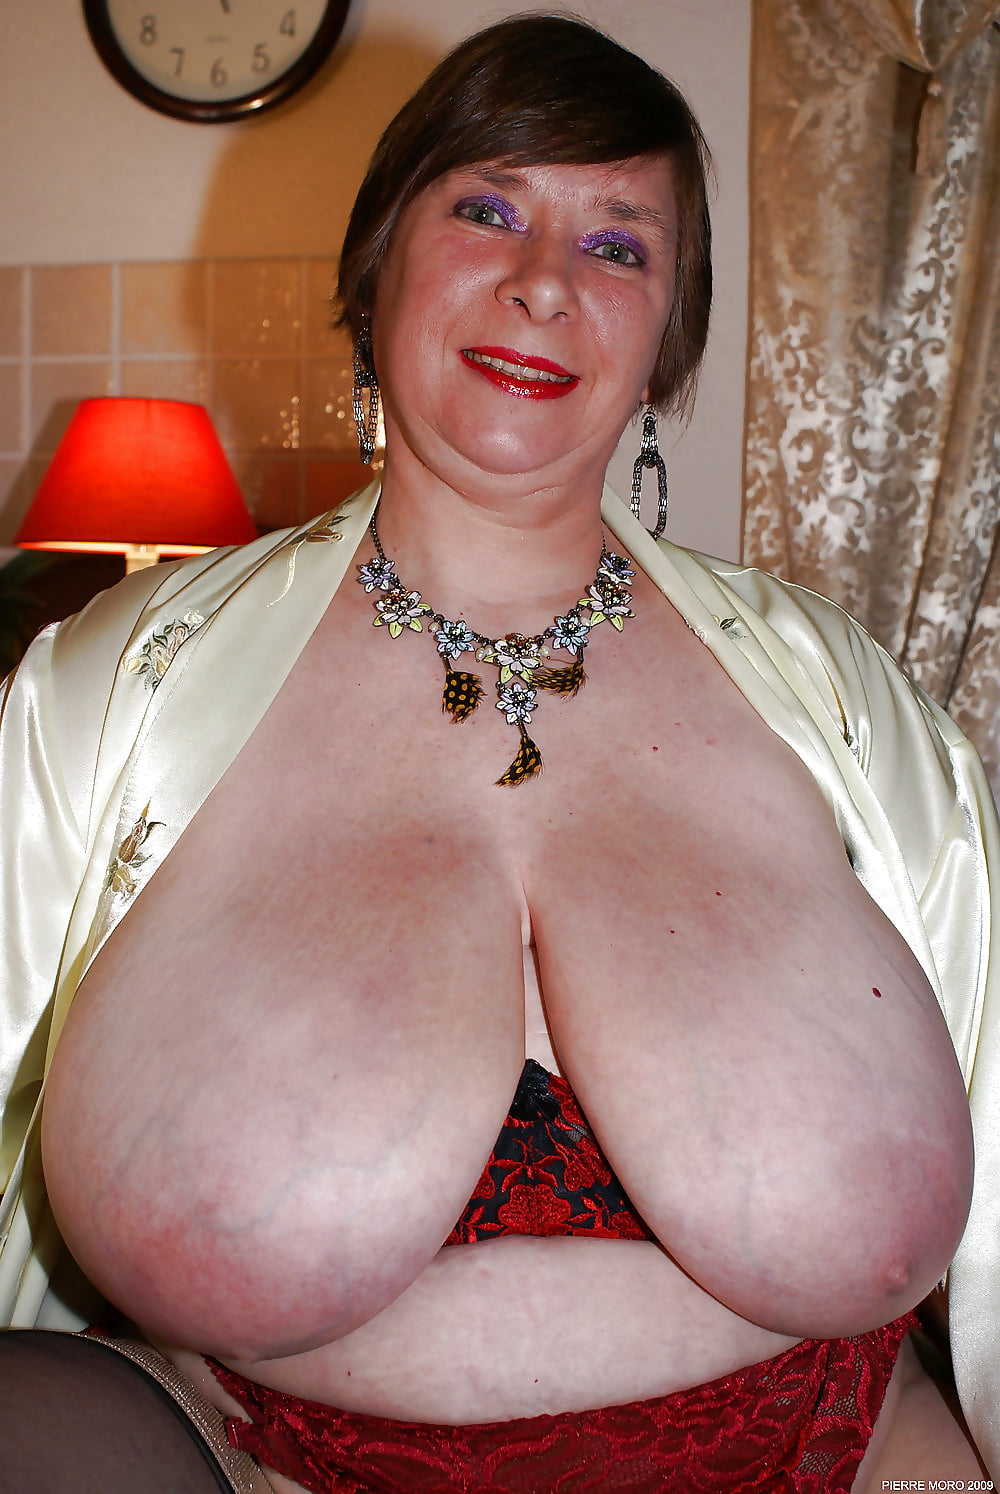 Mature And Bbw 48 - 37 Bilder - Xhamstercom-1944